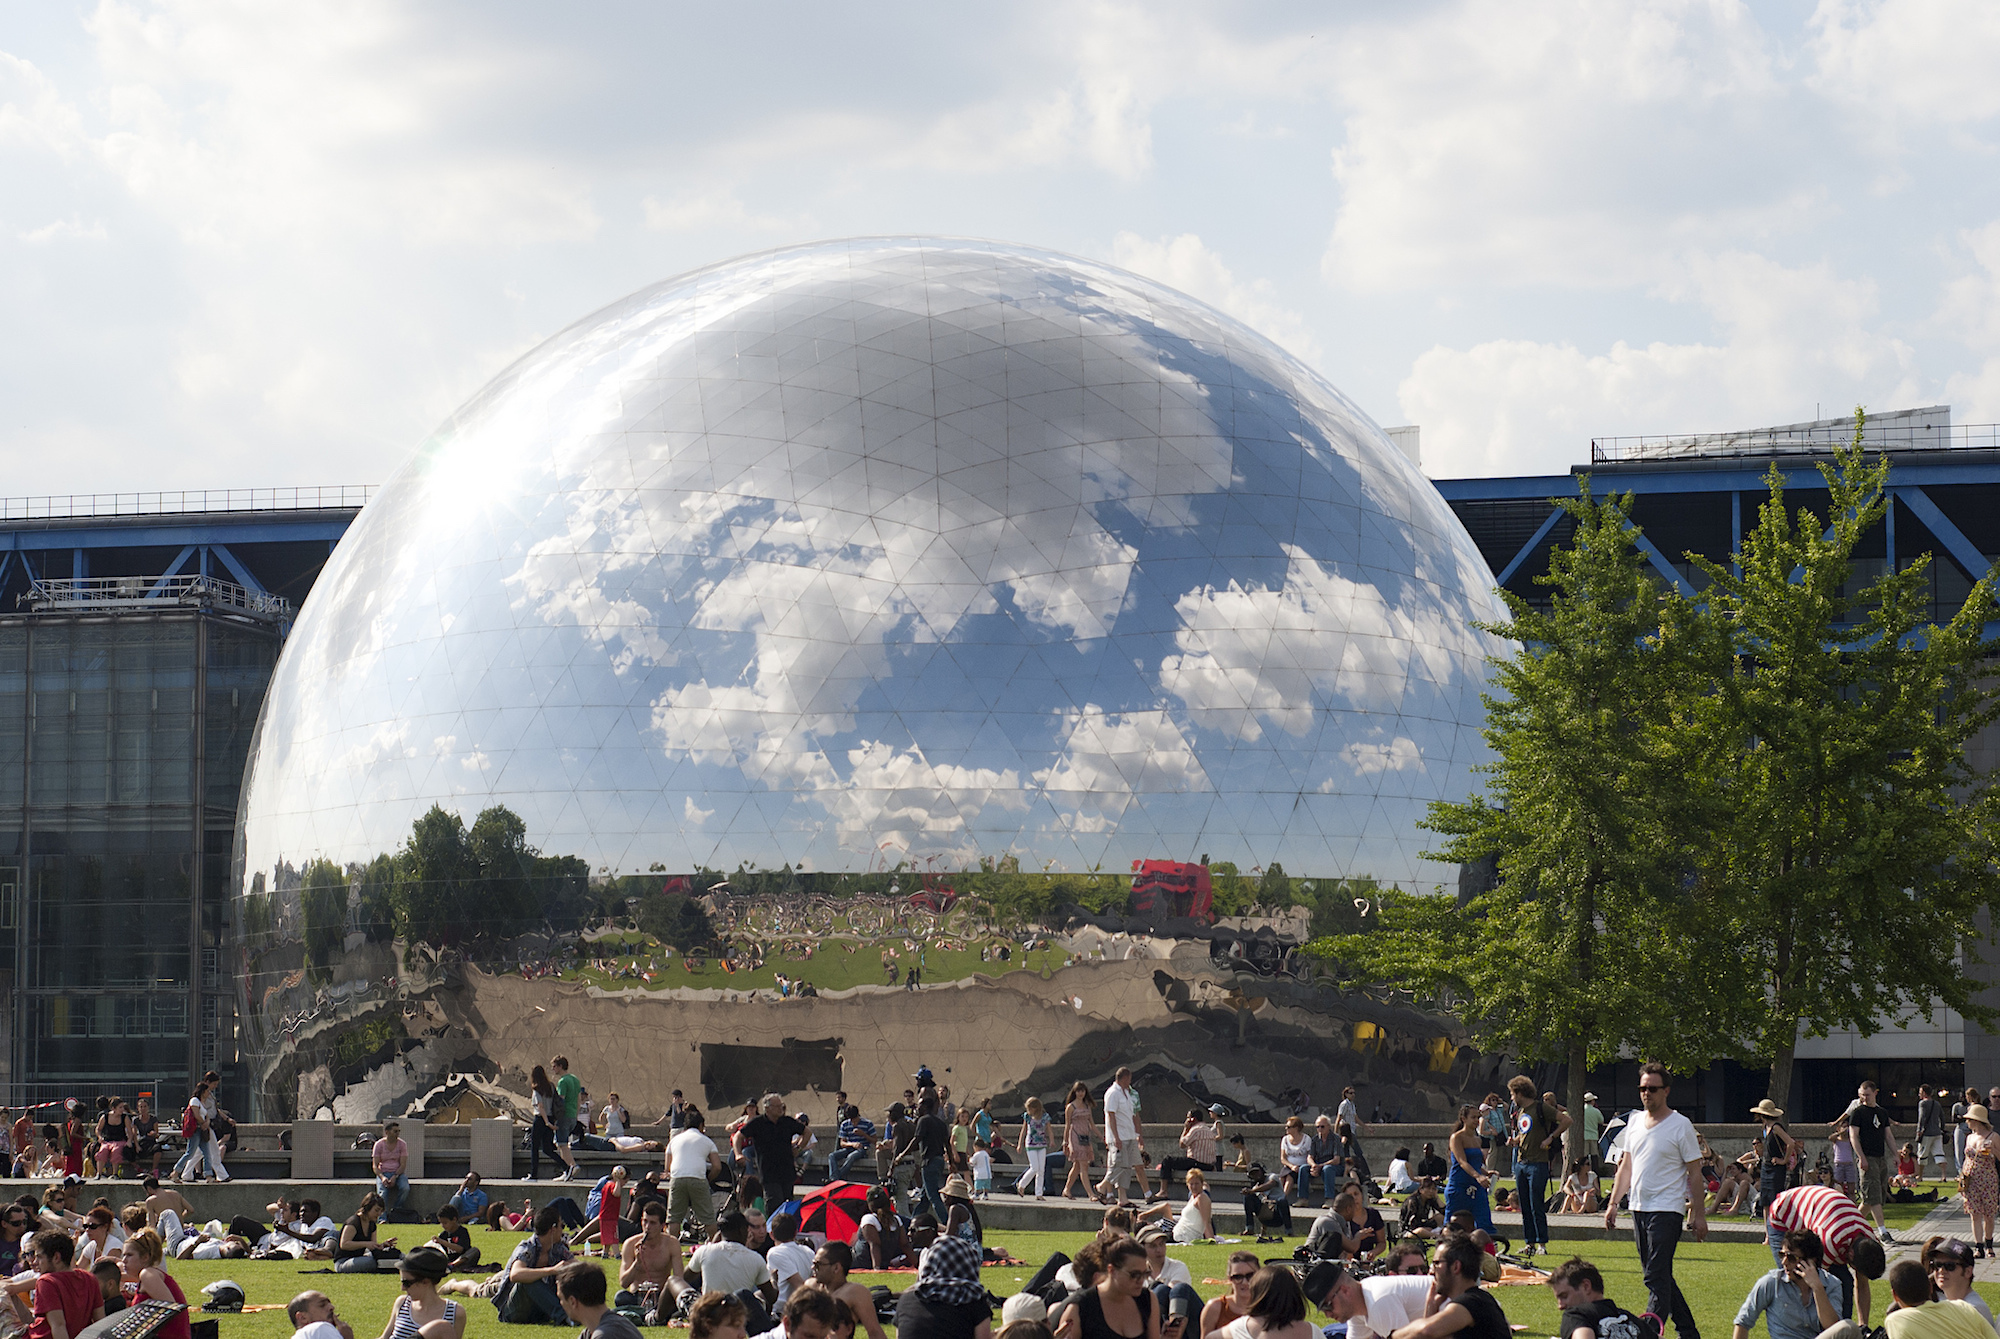 Paris in May is about music festivals like the Villette Sonique electonic music festival in a park close to the 3D cinema, a huge silver ball.